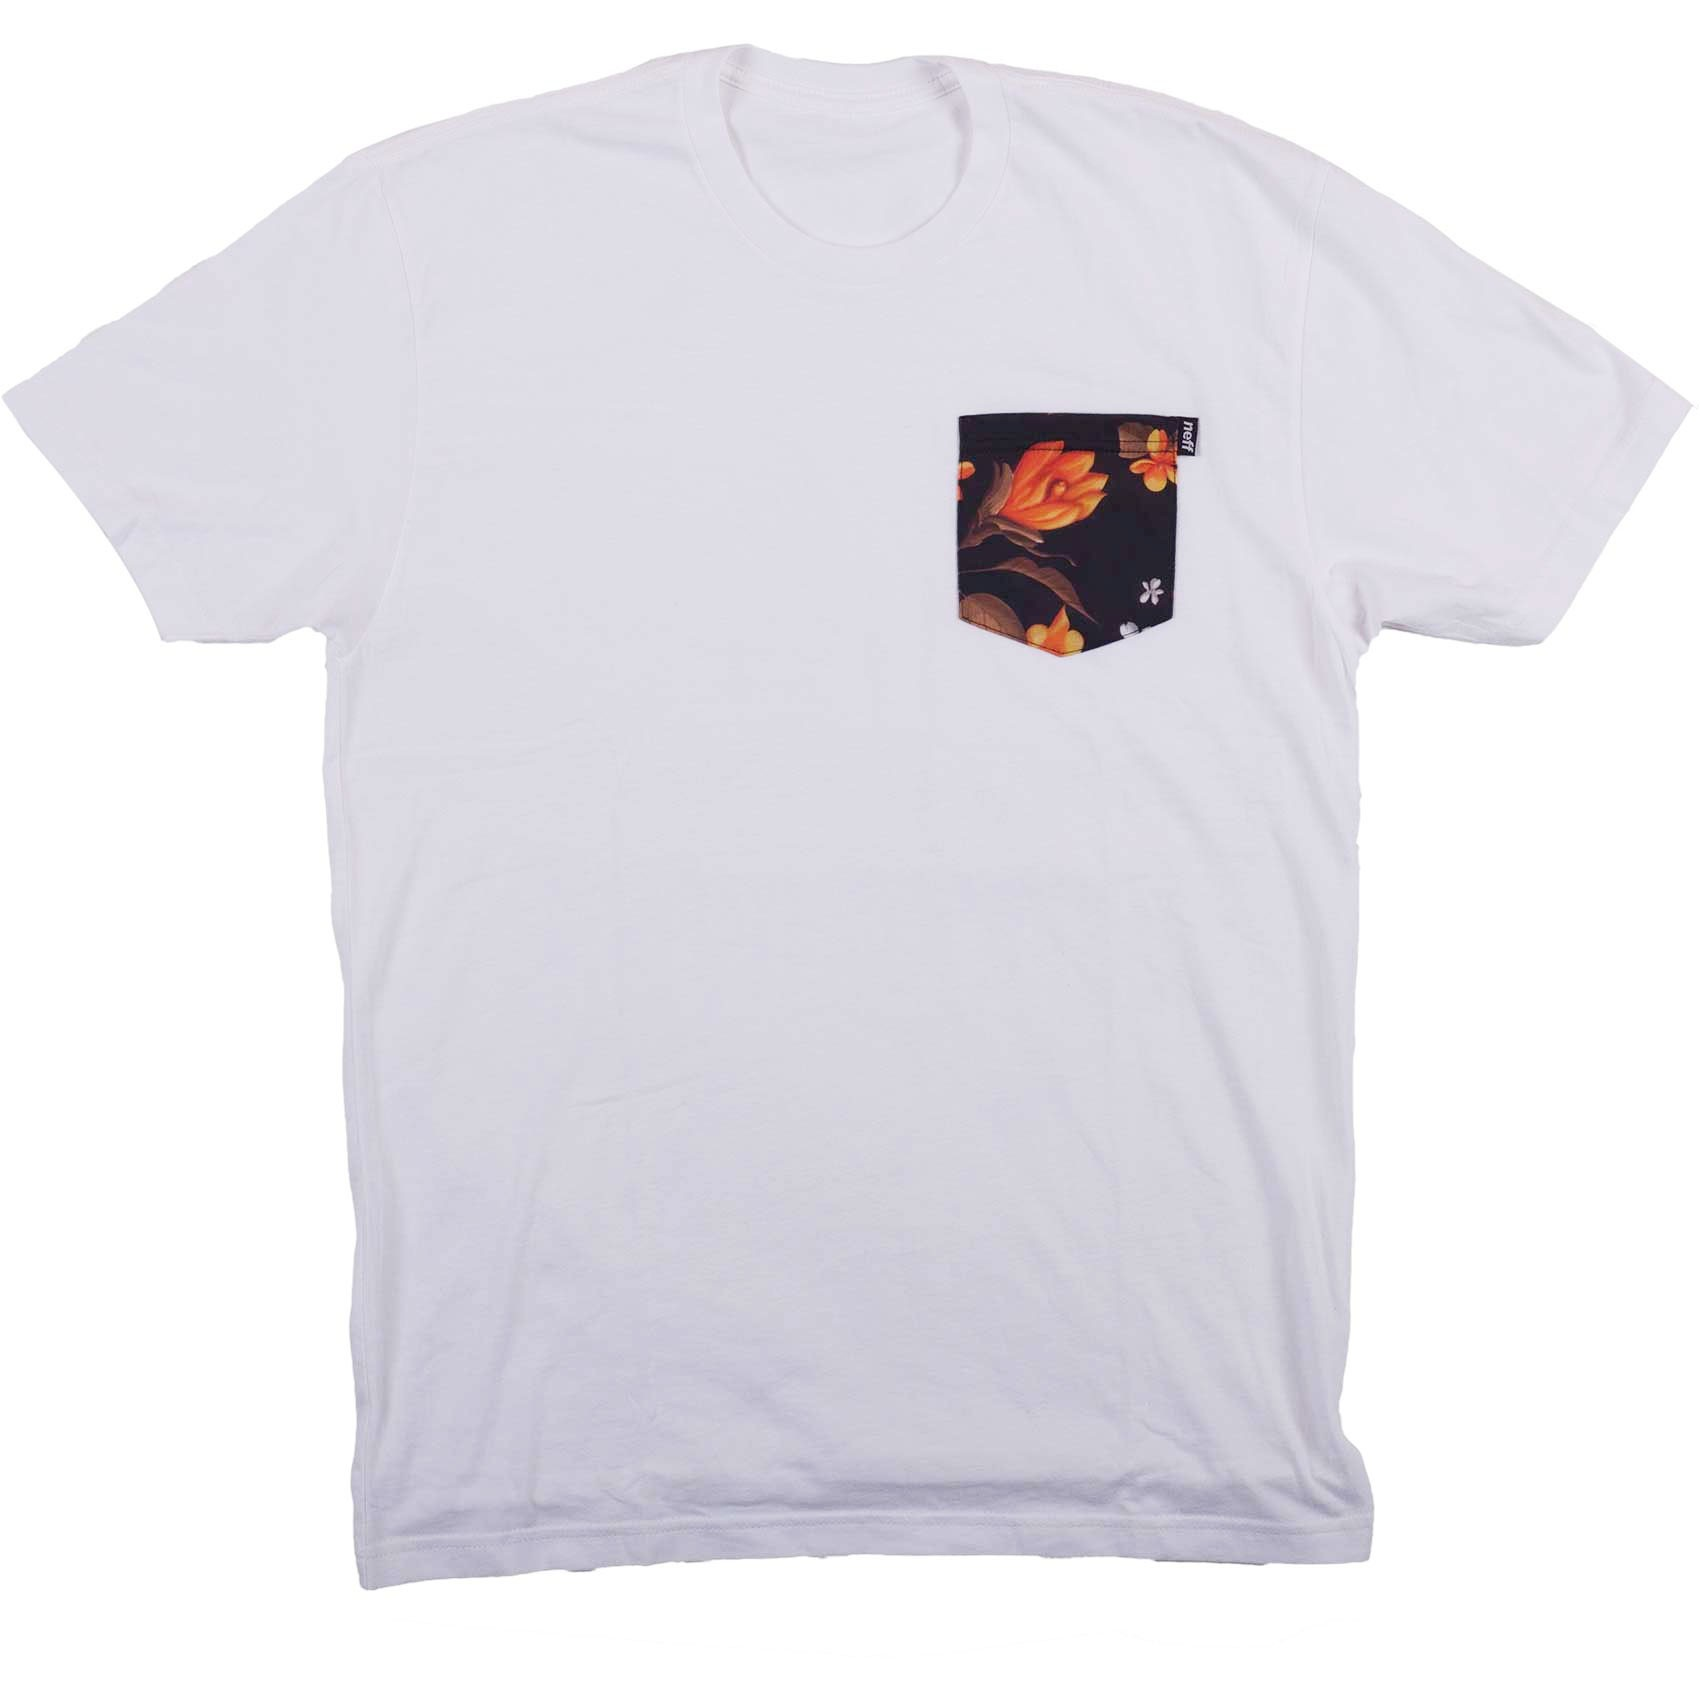 Neff Nifty Premium Pocket T-Shirt - White/Commando